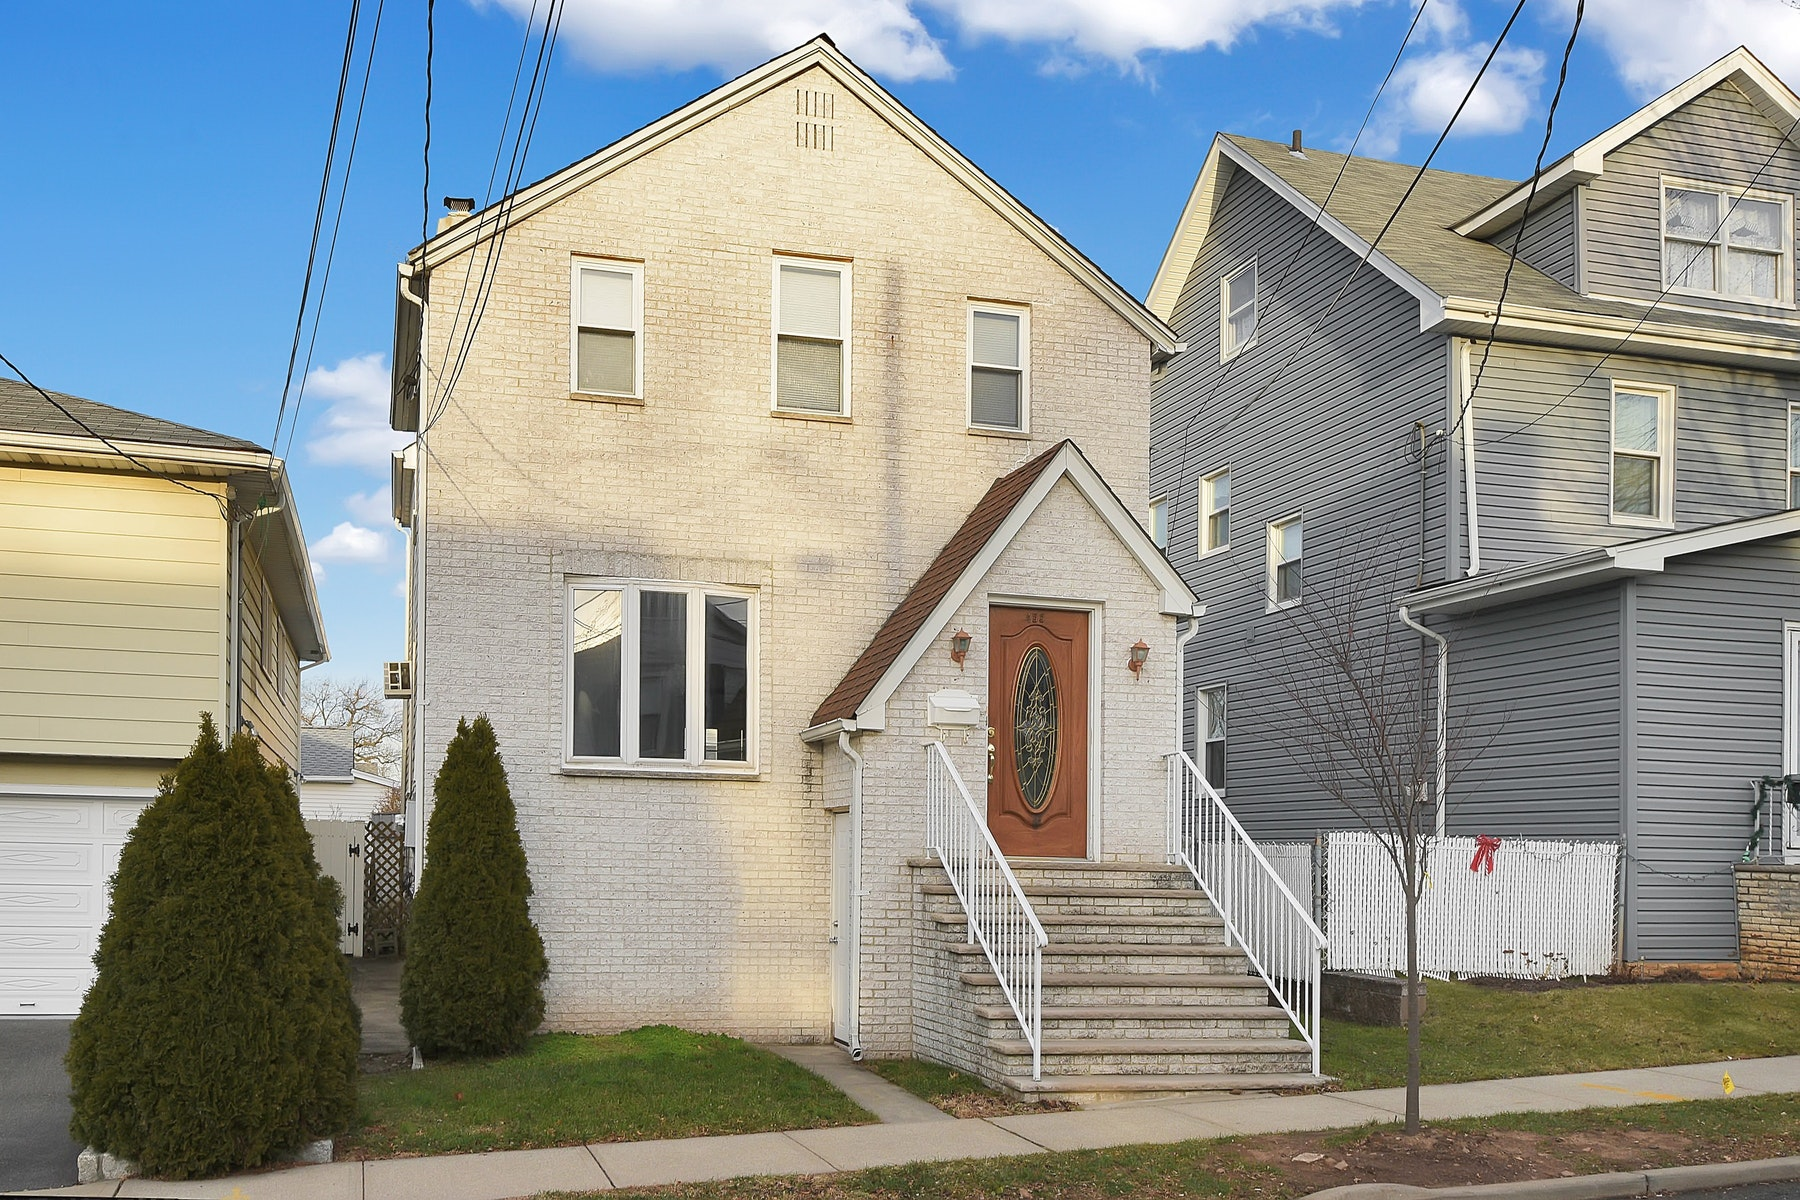 Single Family Home for Sale at Ready to Move In 455 Summit Ave, Carlstadt, New Jersey 07072 United States